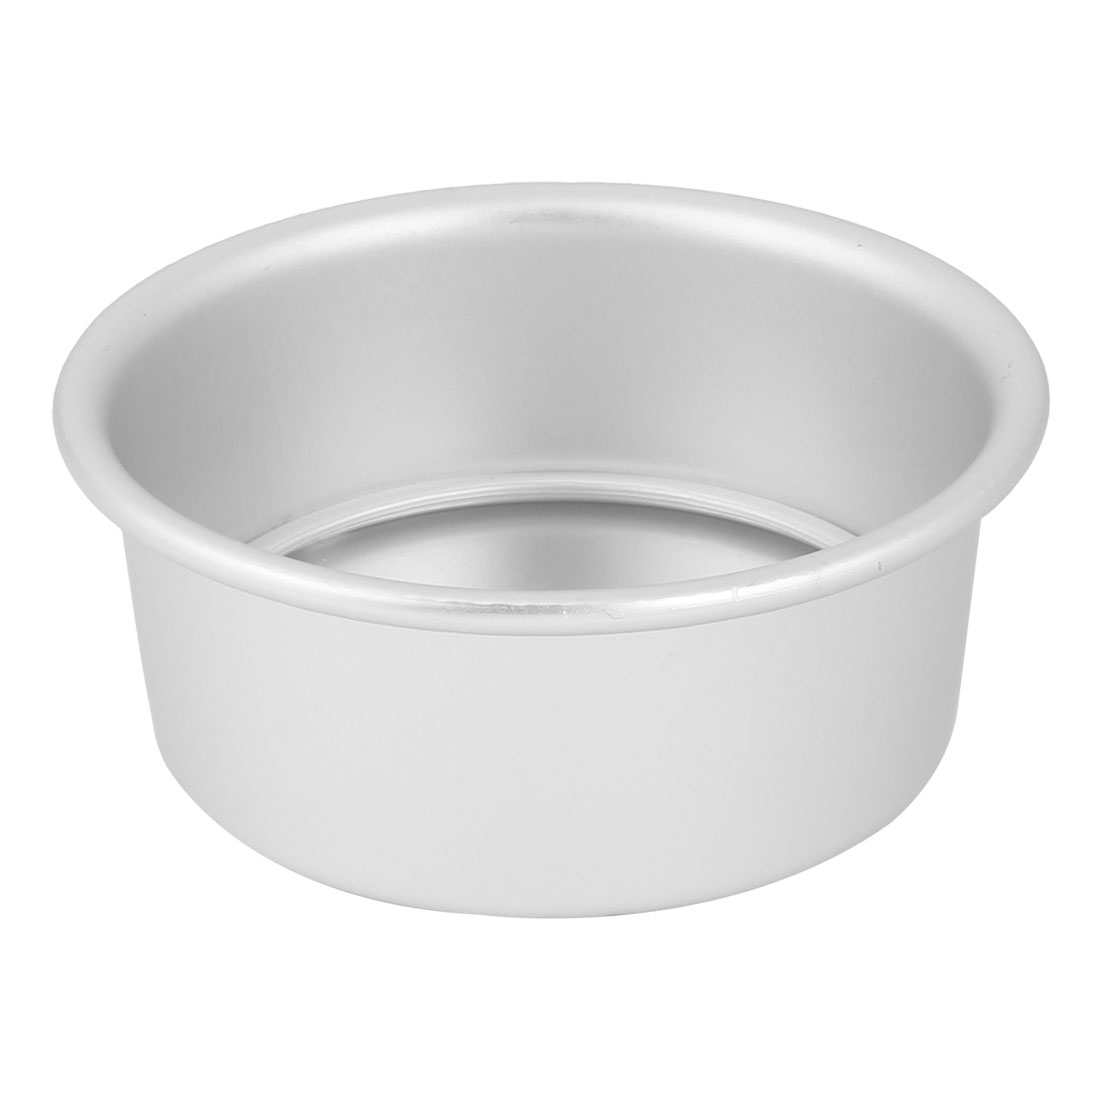 Kitchen Aluminum Alloy Removable Bottom Nonstick Bakeware Cake Mold Mould Pot